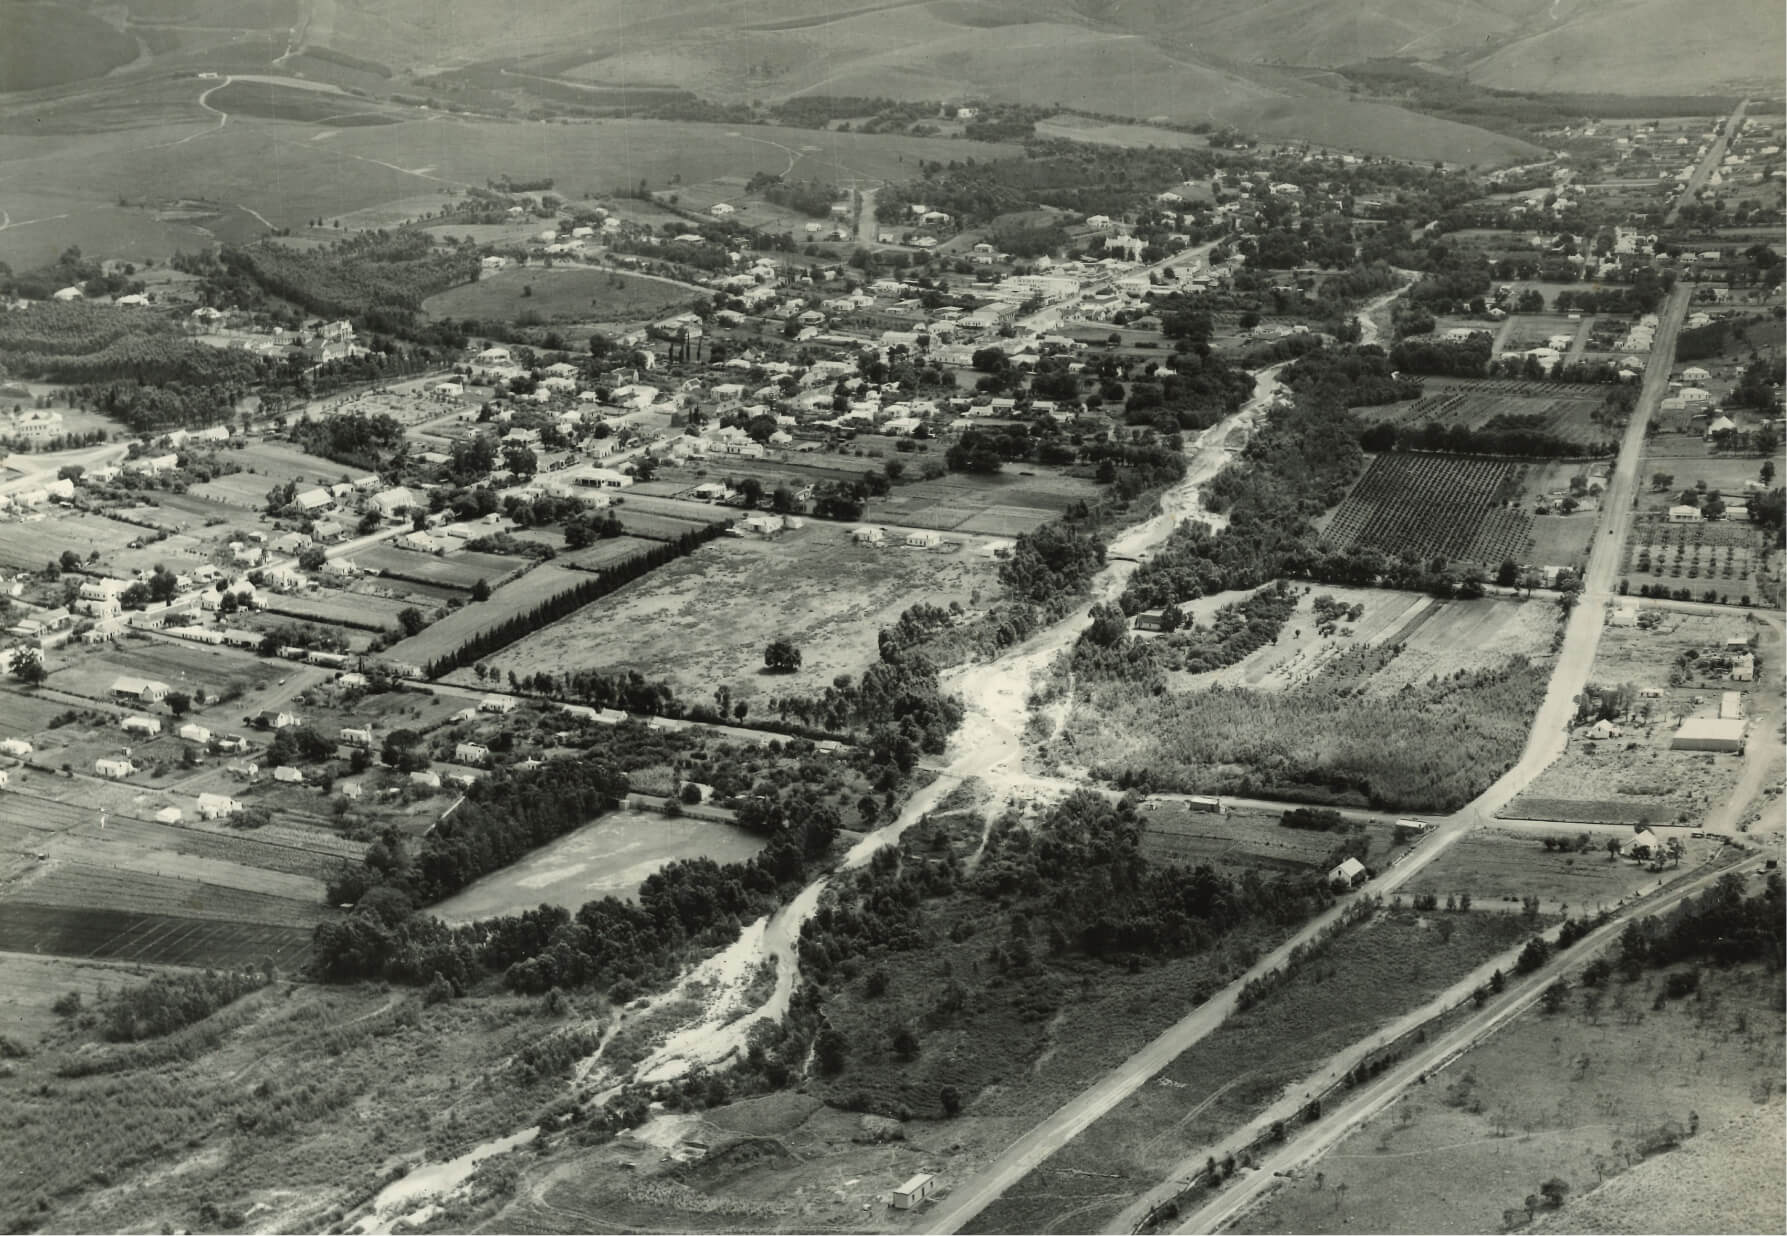 View of old Swellendam from above.